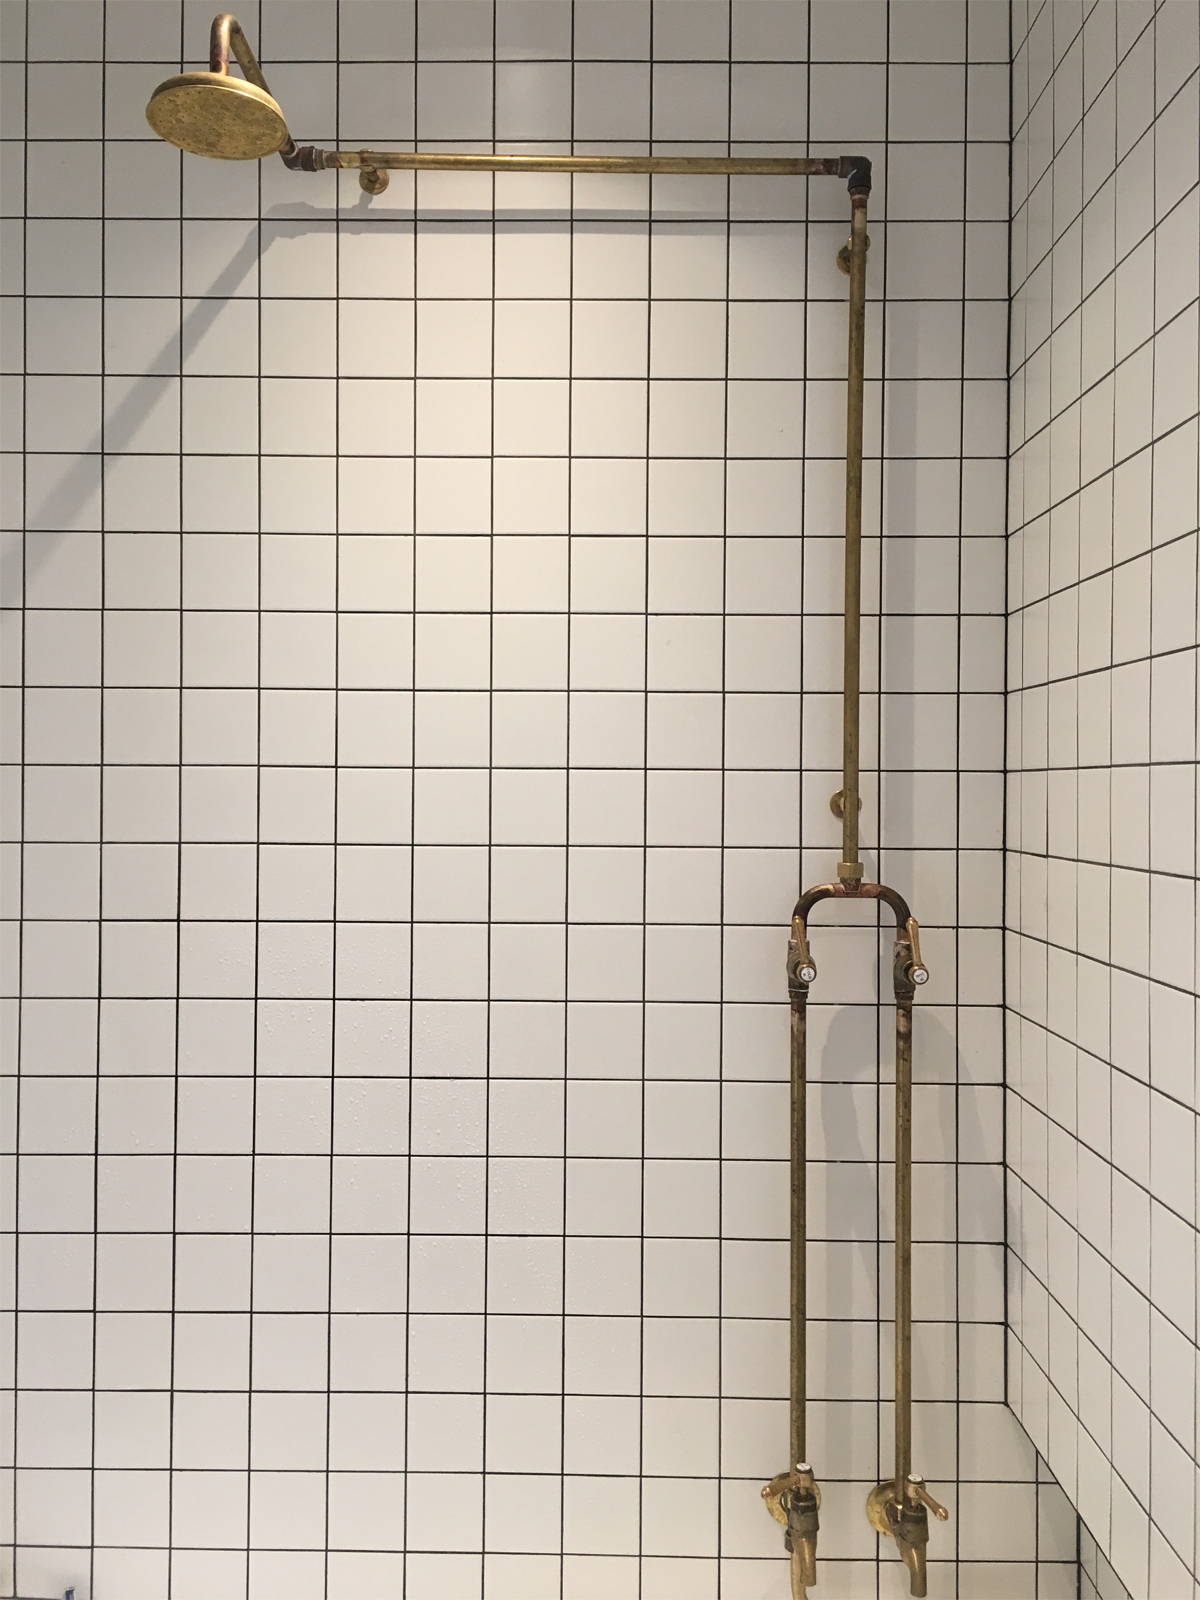 CB | Offset Exposed Pipework